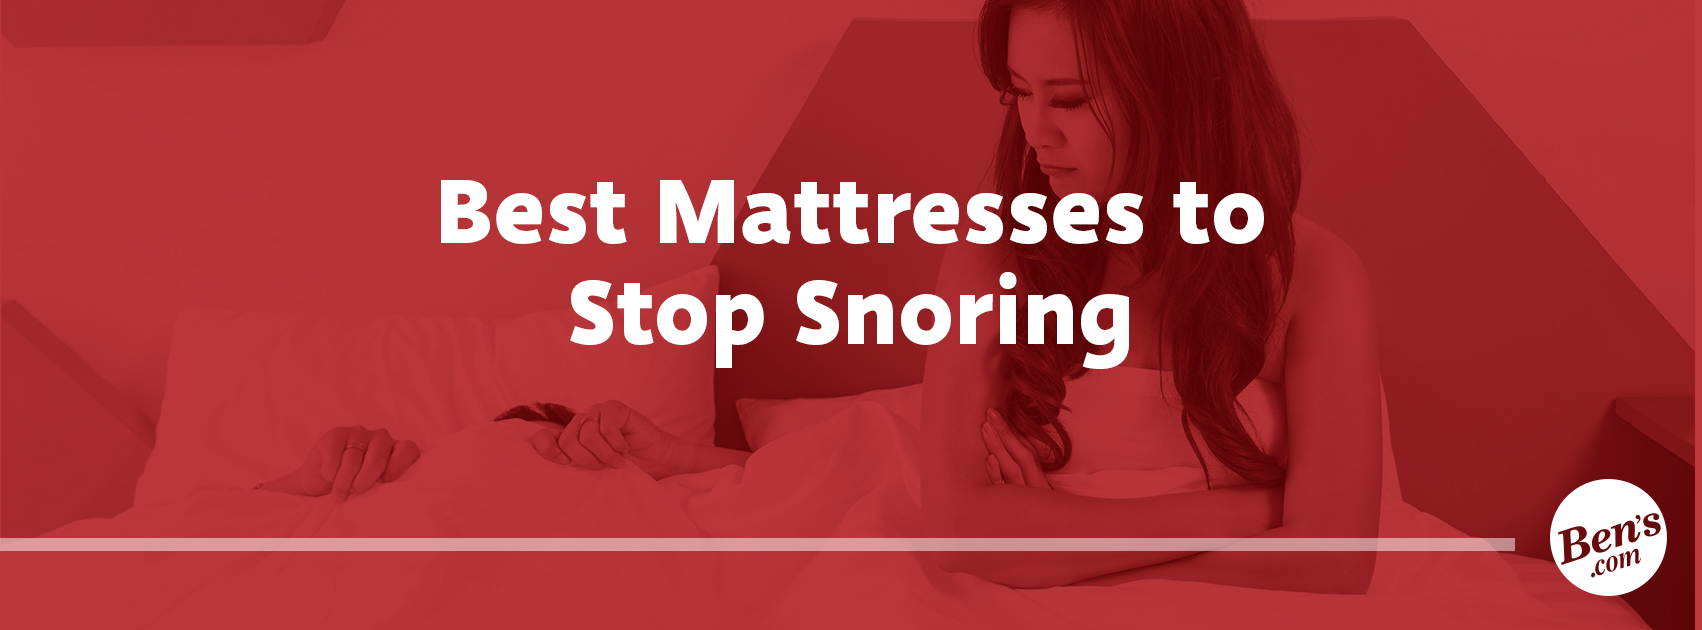 06-30_3_Best_Mattresses_To_Stop